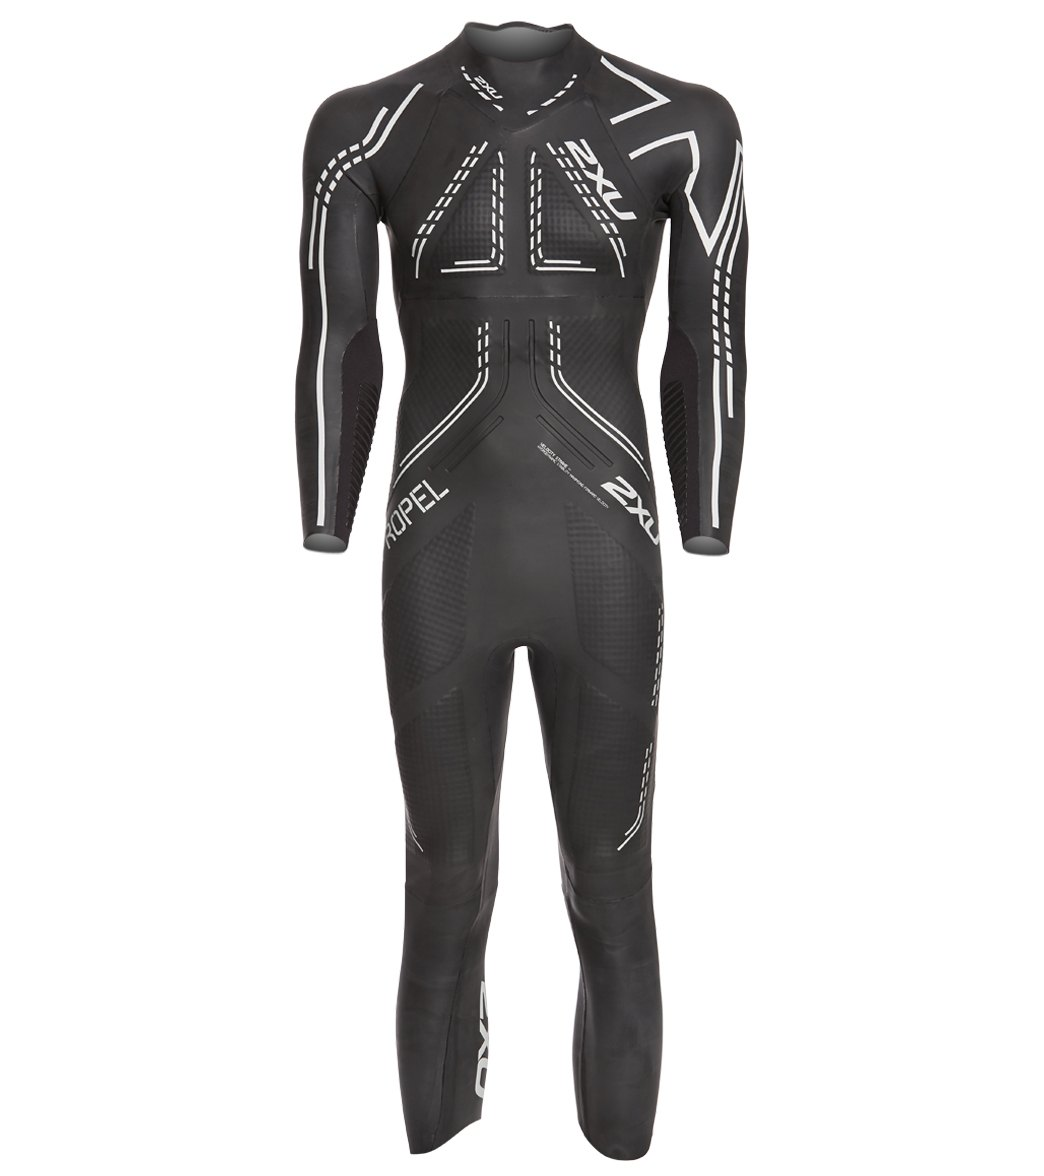 66f9905f15 2XU Men s Propel Tri Wetsuit at SwimOutlet.com - Free Shipping